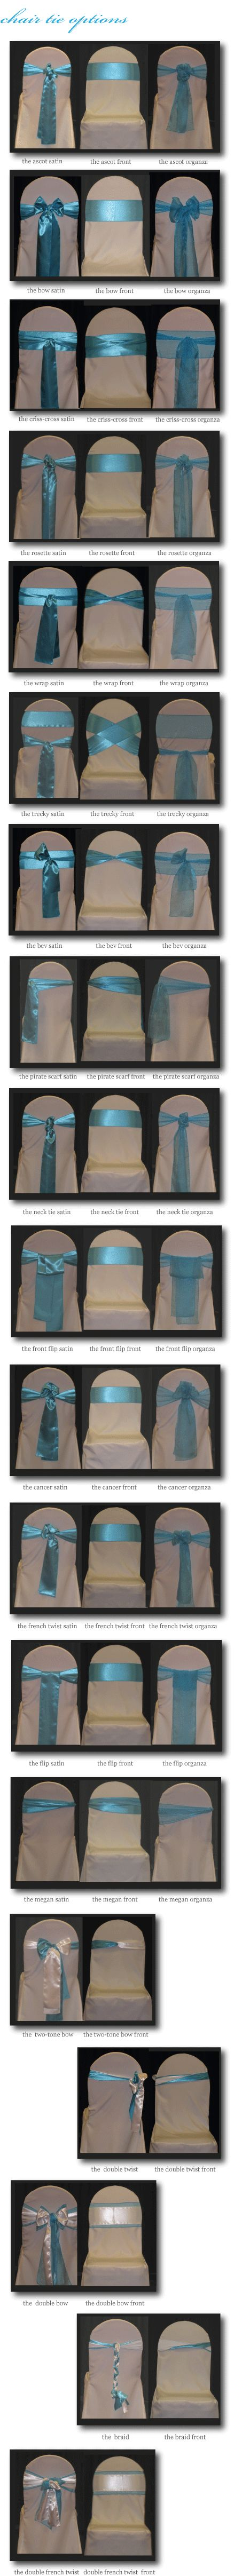 Chair Covers Omaha - CHAIR TIE OPTIONS